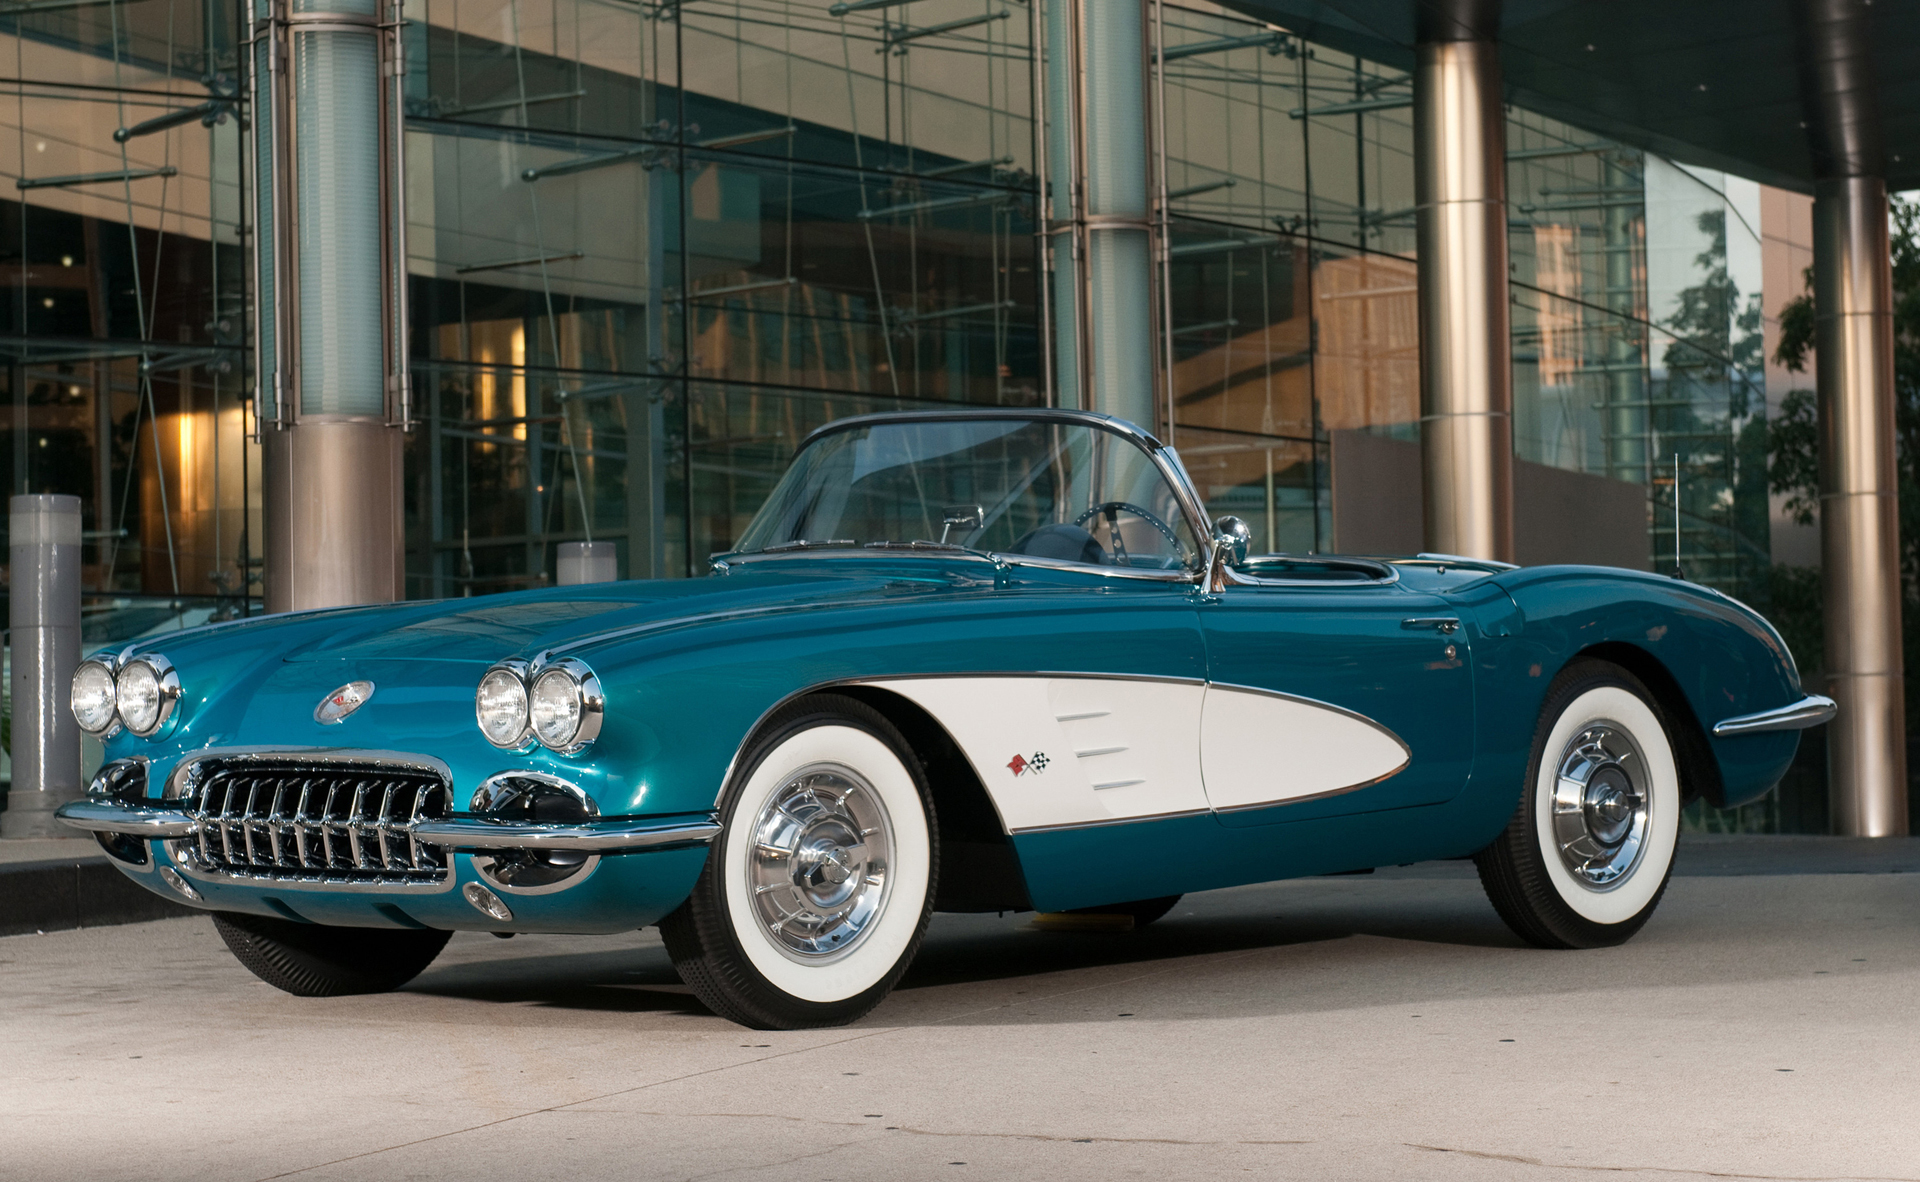 Chevrolet Corvette Convertible Coupe 1958